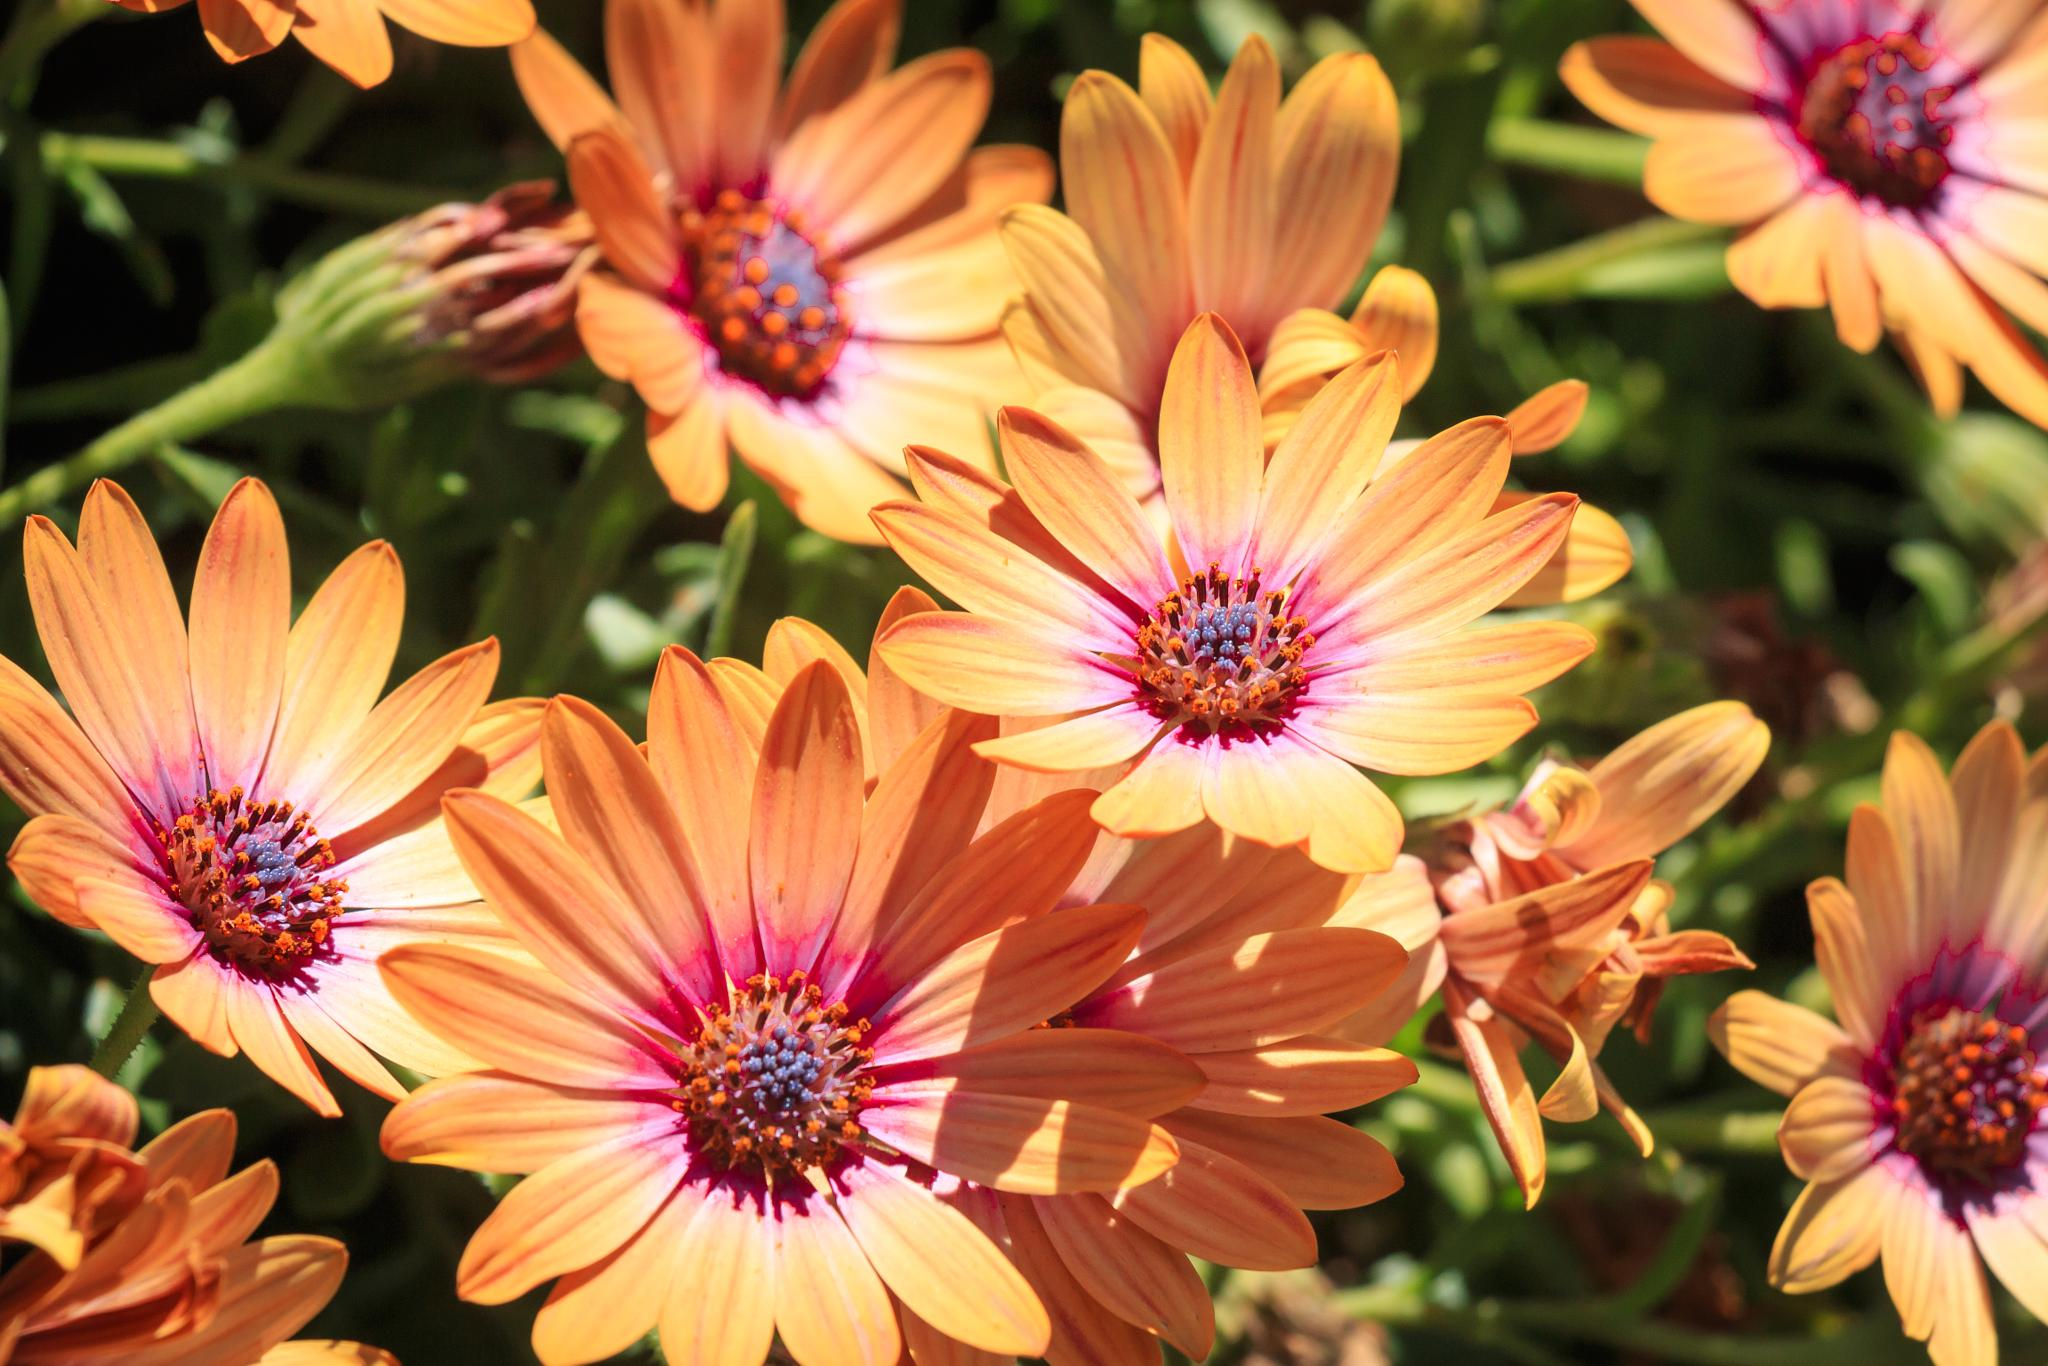 Colorful Daisies by Petminder